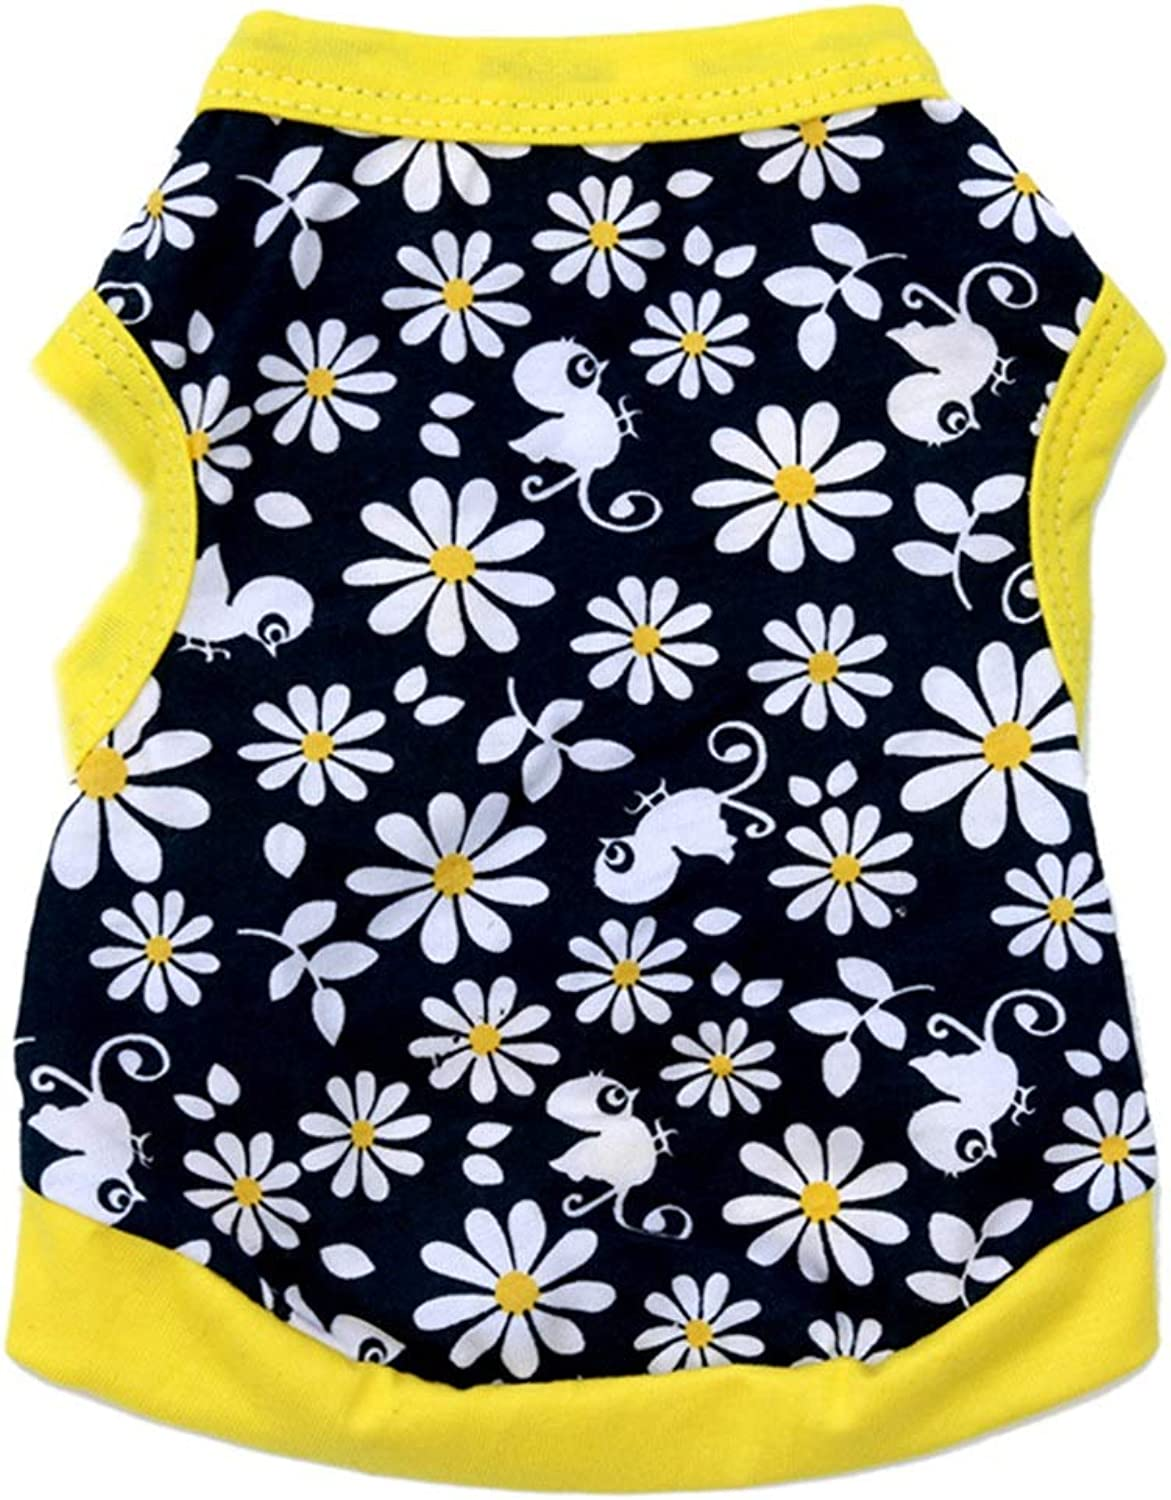 Huayue Dog Clothing Cotton Jersey Pet Vest Breathable and Comfortable (color   As Shown, Size   M)